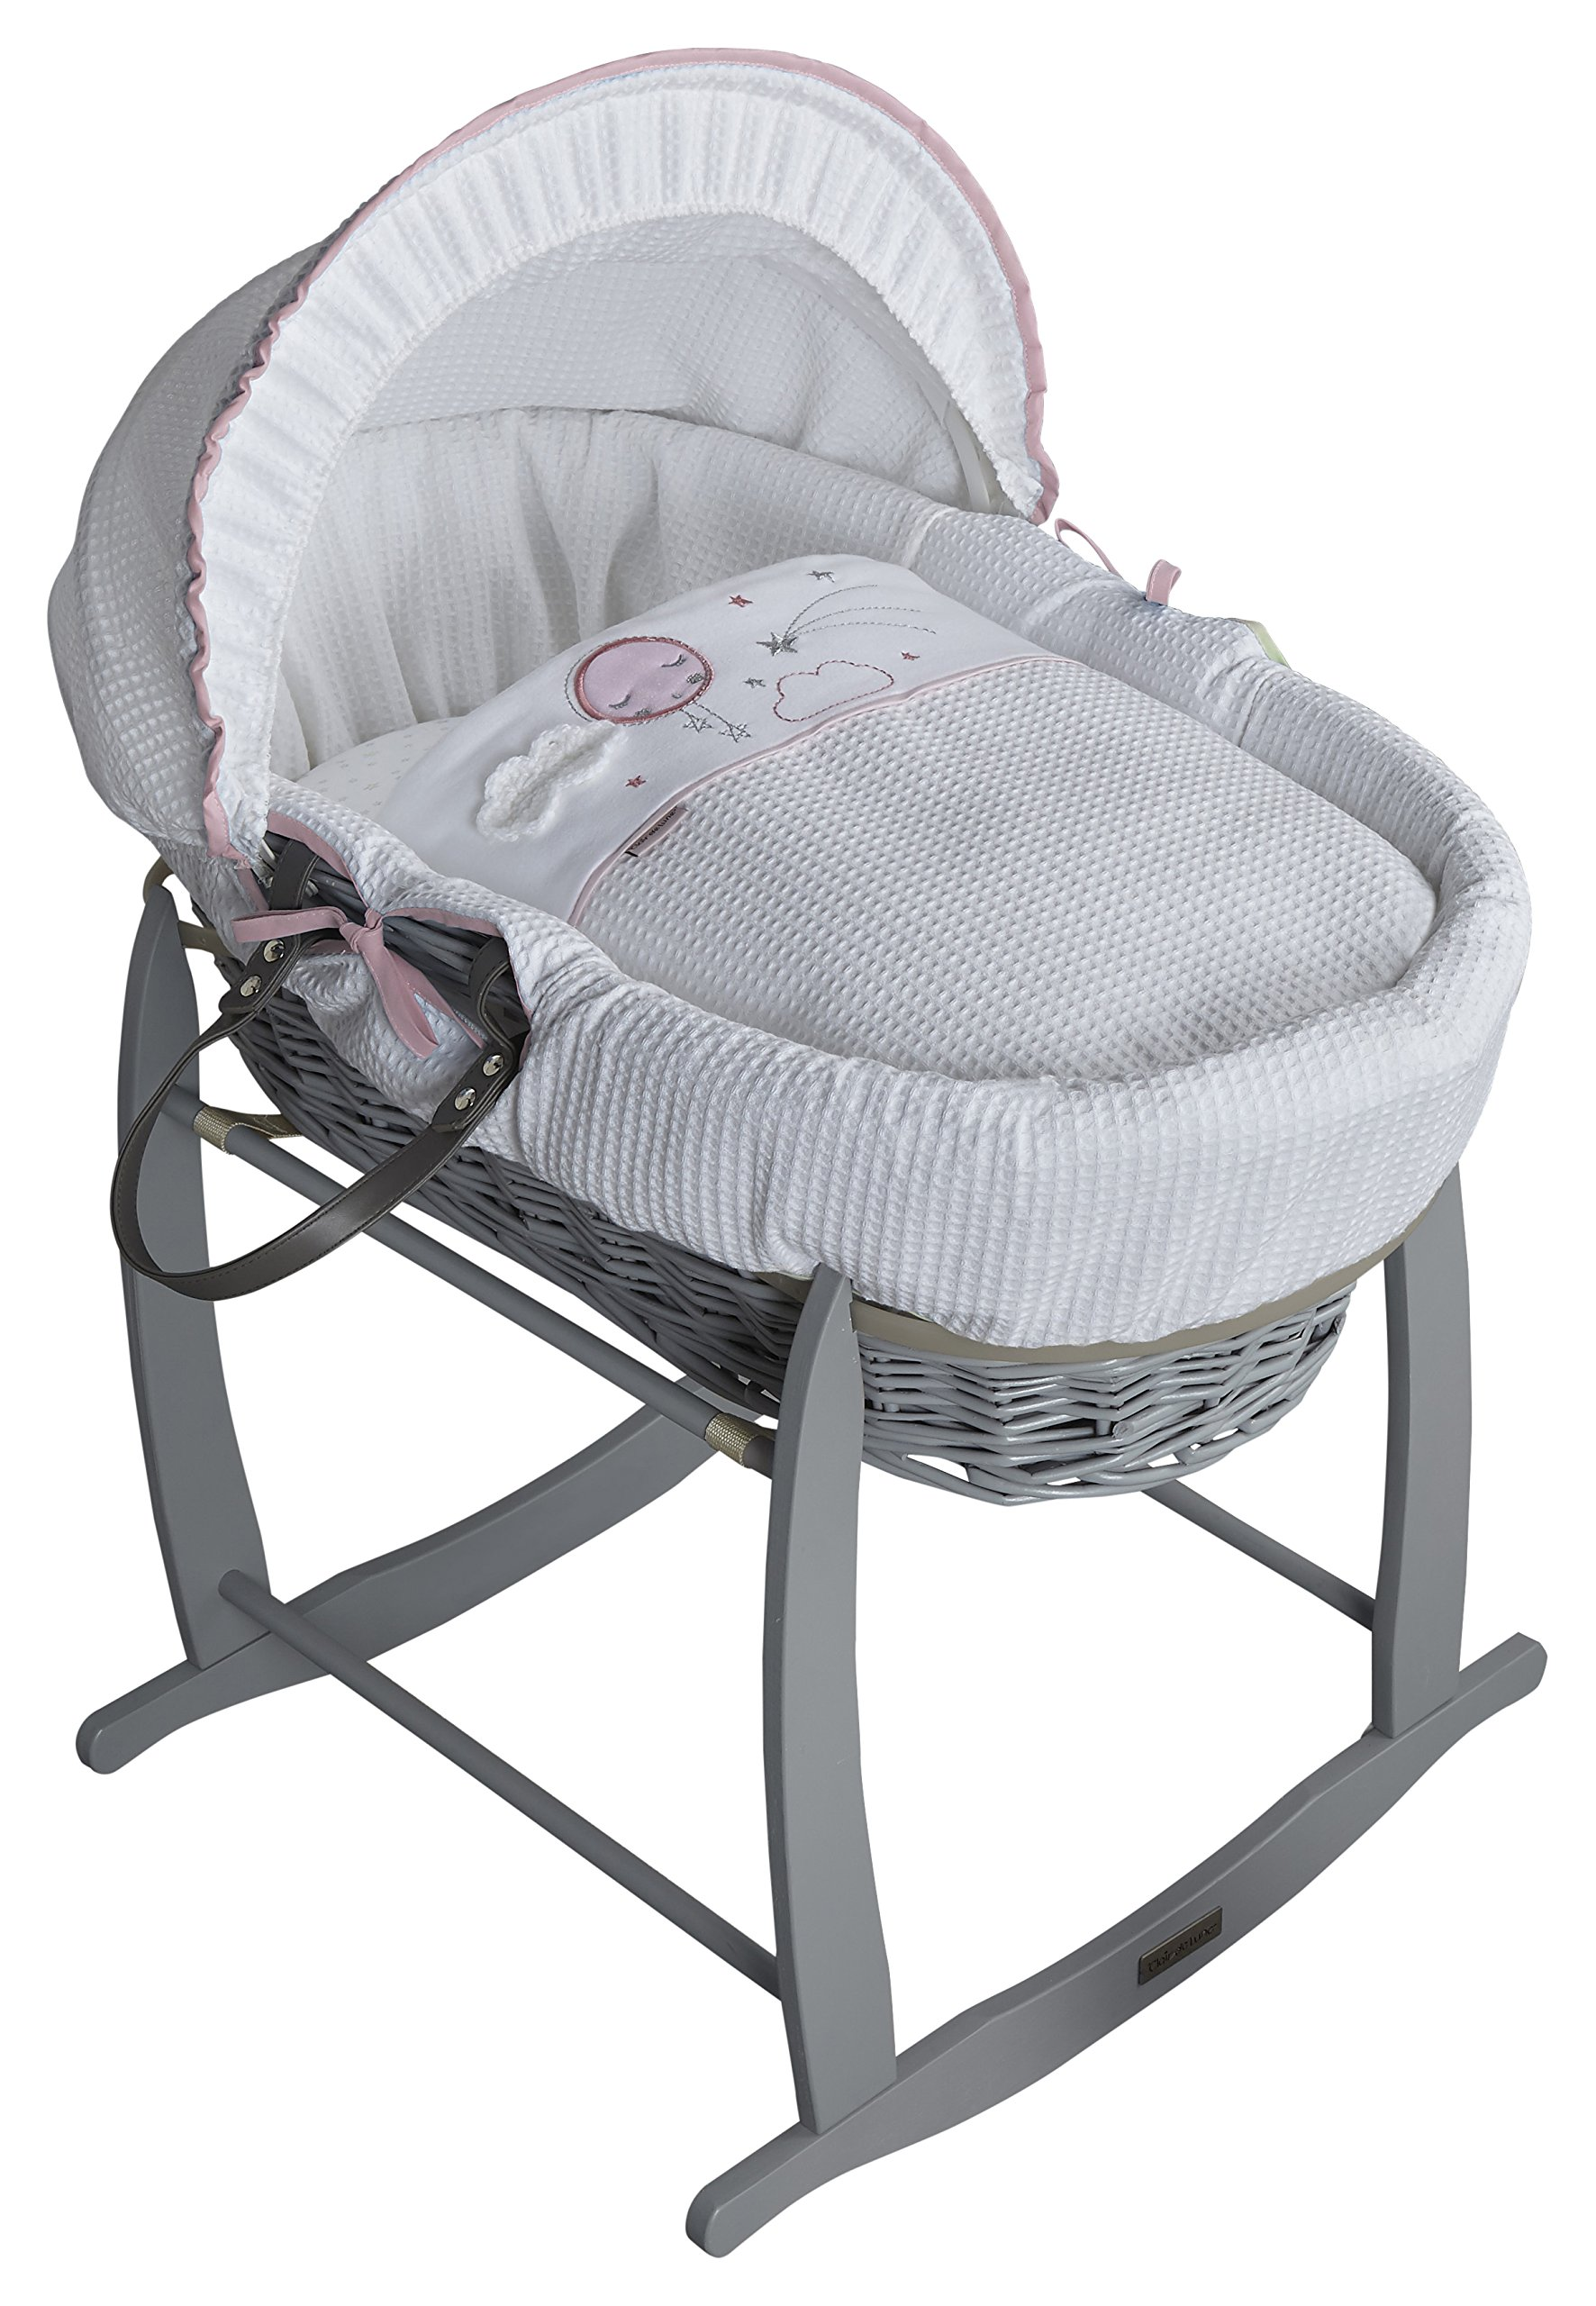 Clair de Lune Wicker Moses Basket, Pink/Grey, Over The Moon Clair de Lune Made from 100% super soft cotton fabric, featuring star prints and a sleepy moon with crocheted cloud appliqué for the perfect finishing touch. Comes complete with a removable, adjustable hood, padded liner, coverlet, 2 carry handles, and a mattress. *stand sold separately. Adjustable hood that's perfect for creating a cosy sleeping space for your precious little one. 1